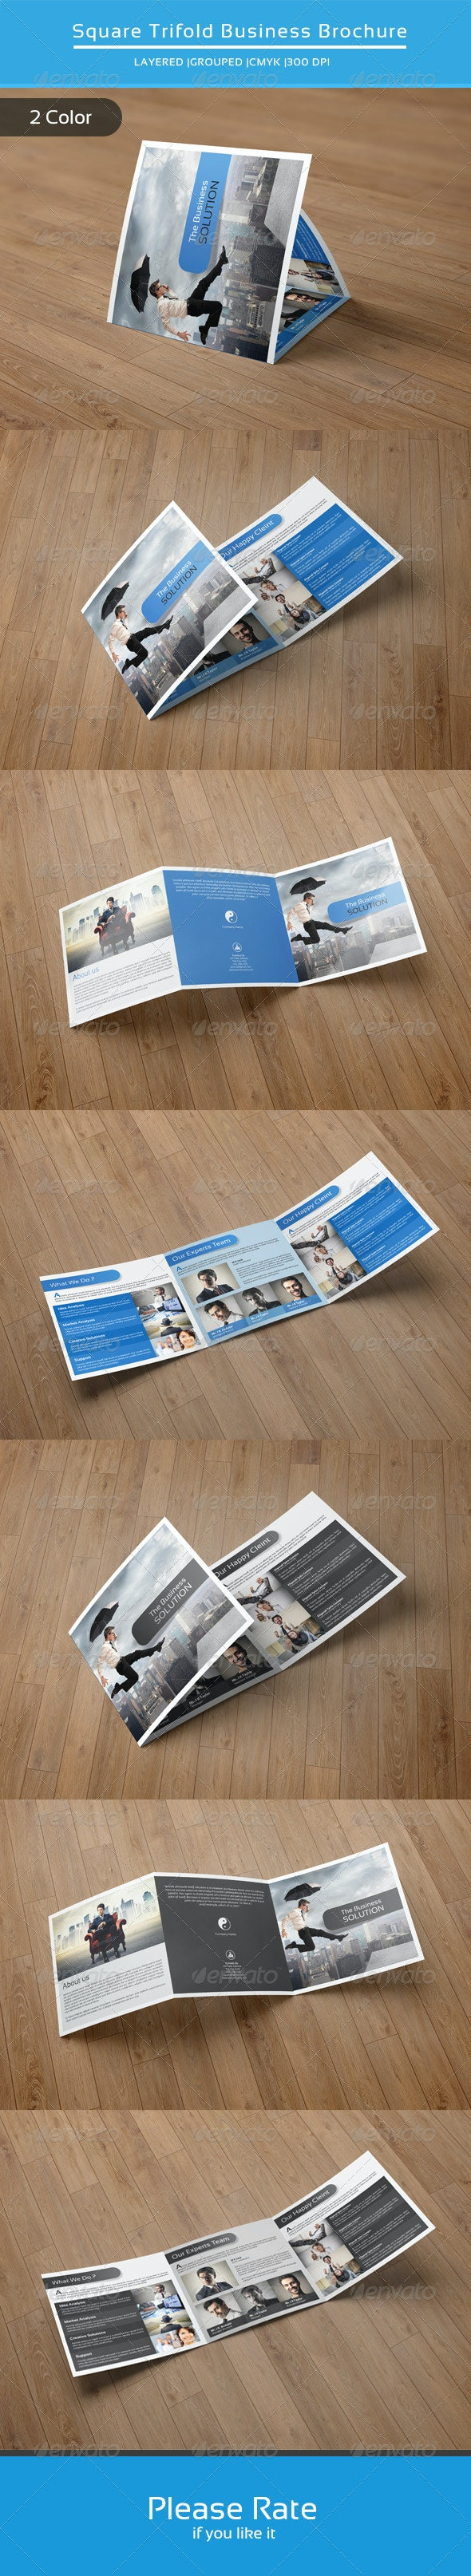 Square Trifold Business Brochure-V21 - Corporate Brochures